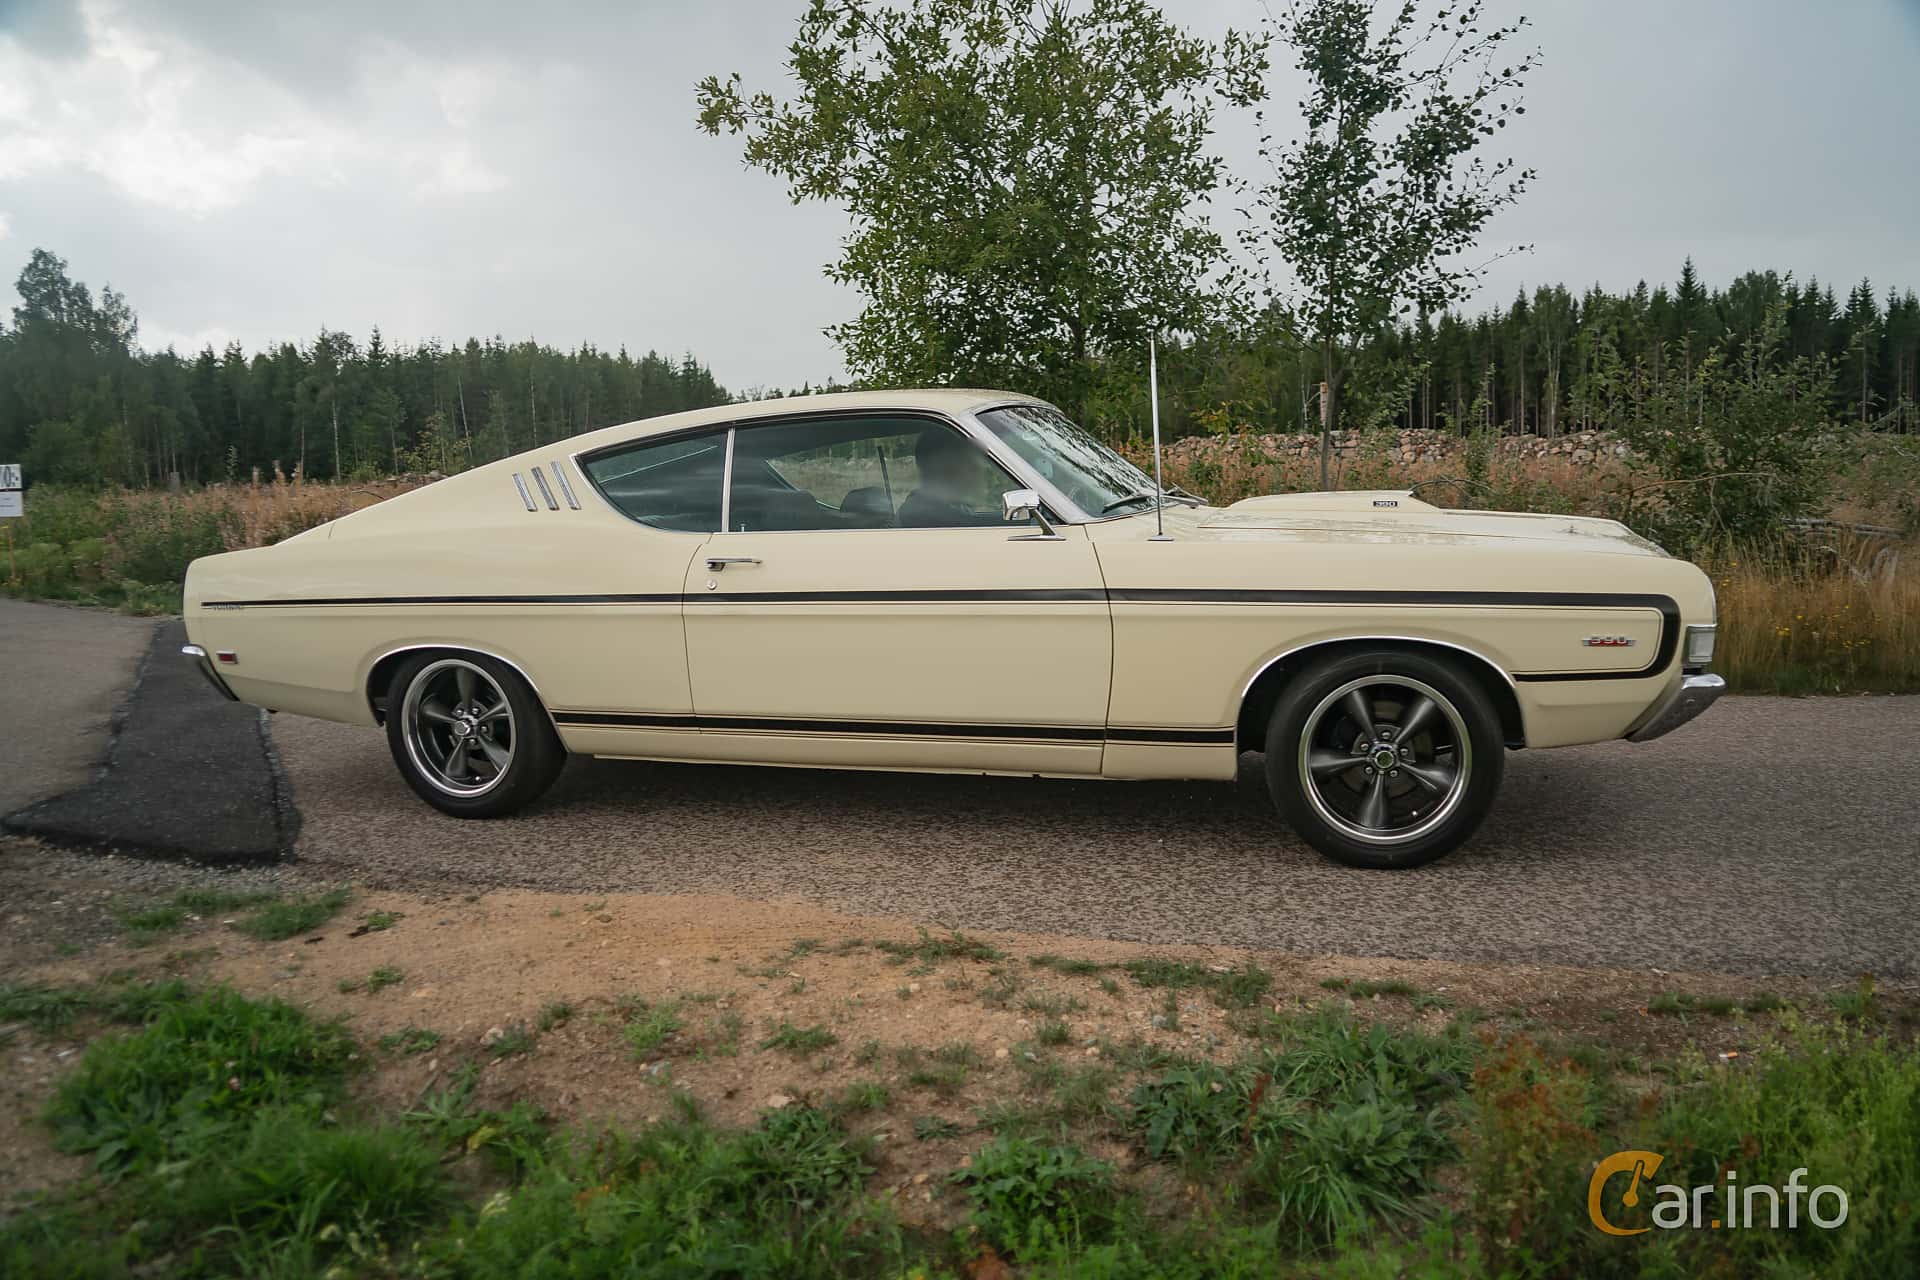 2 Images Of Ford Torino Gt Sportsroof 64 V8 Automatic 324hp 1969 Side 324ps At Power End